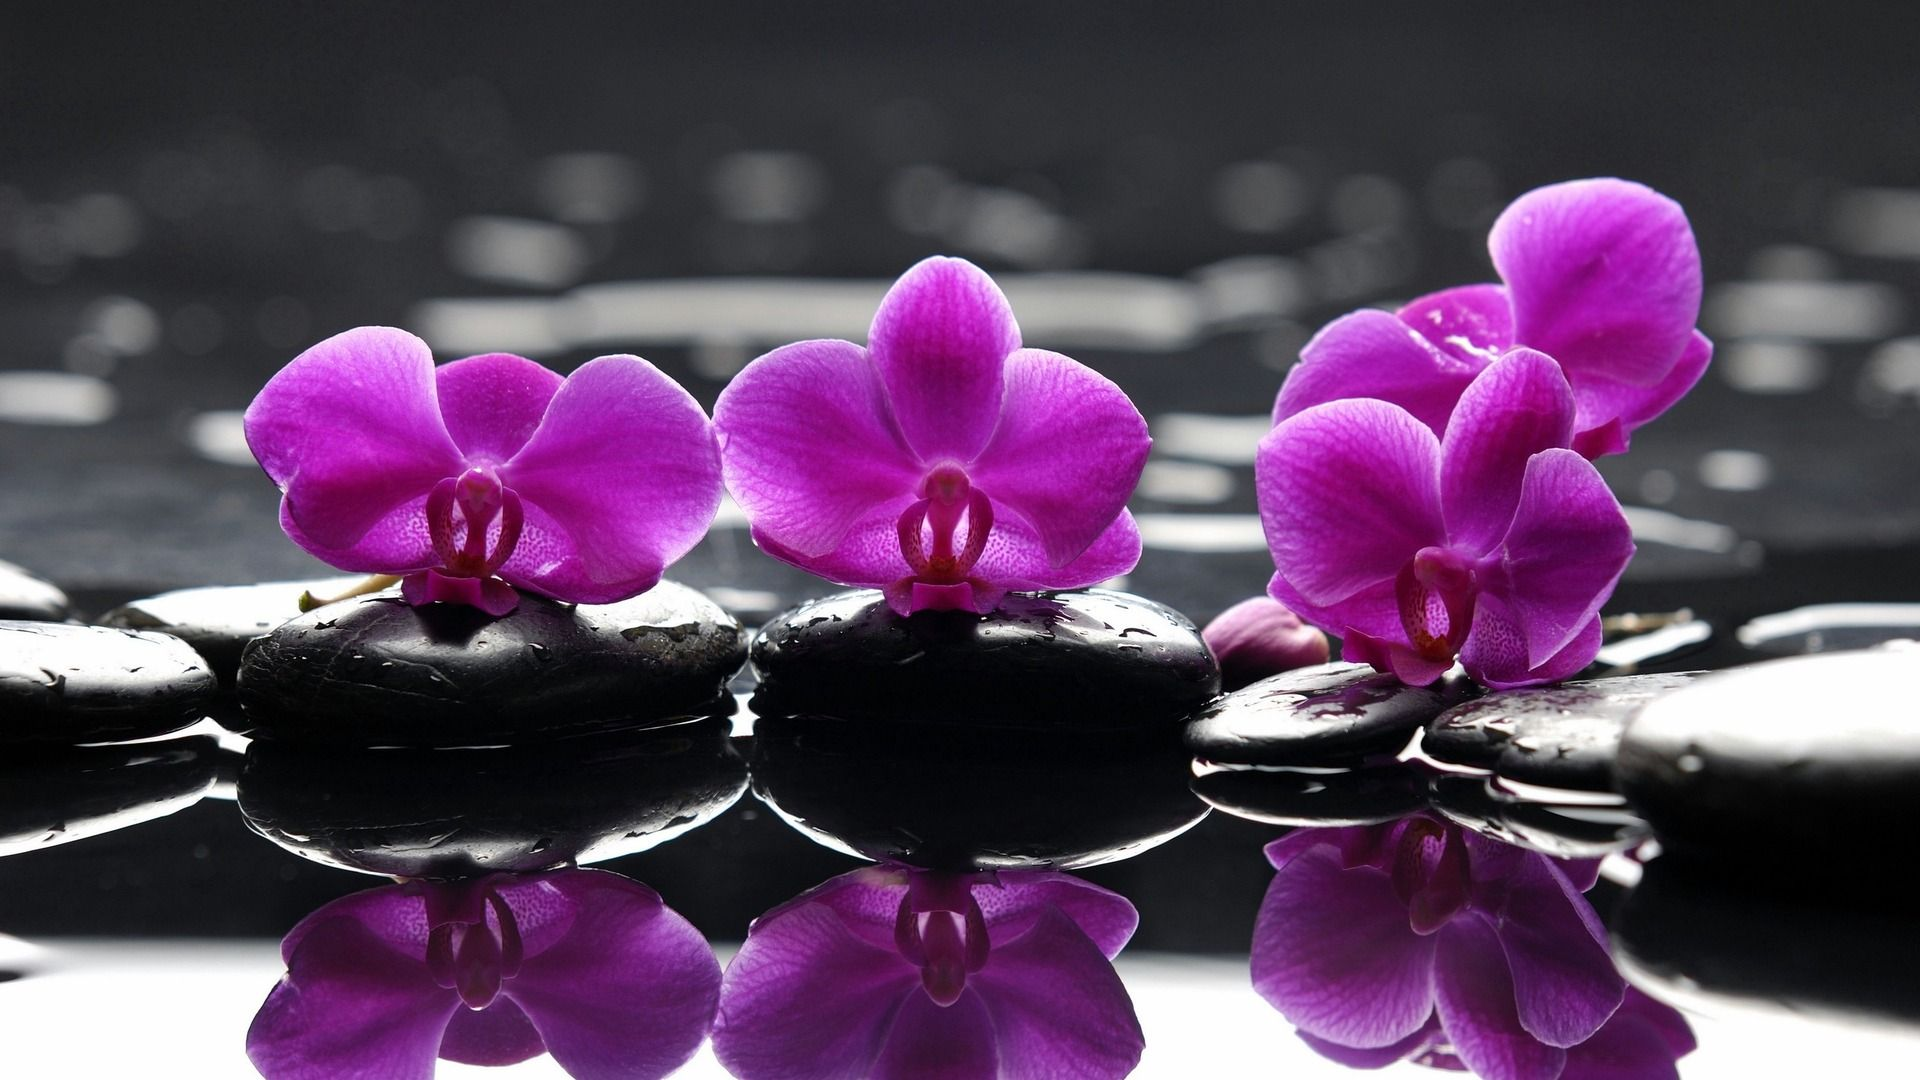 Orchid Wallpapers - Full HD wallpaper search   Virag - Orchidea ...